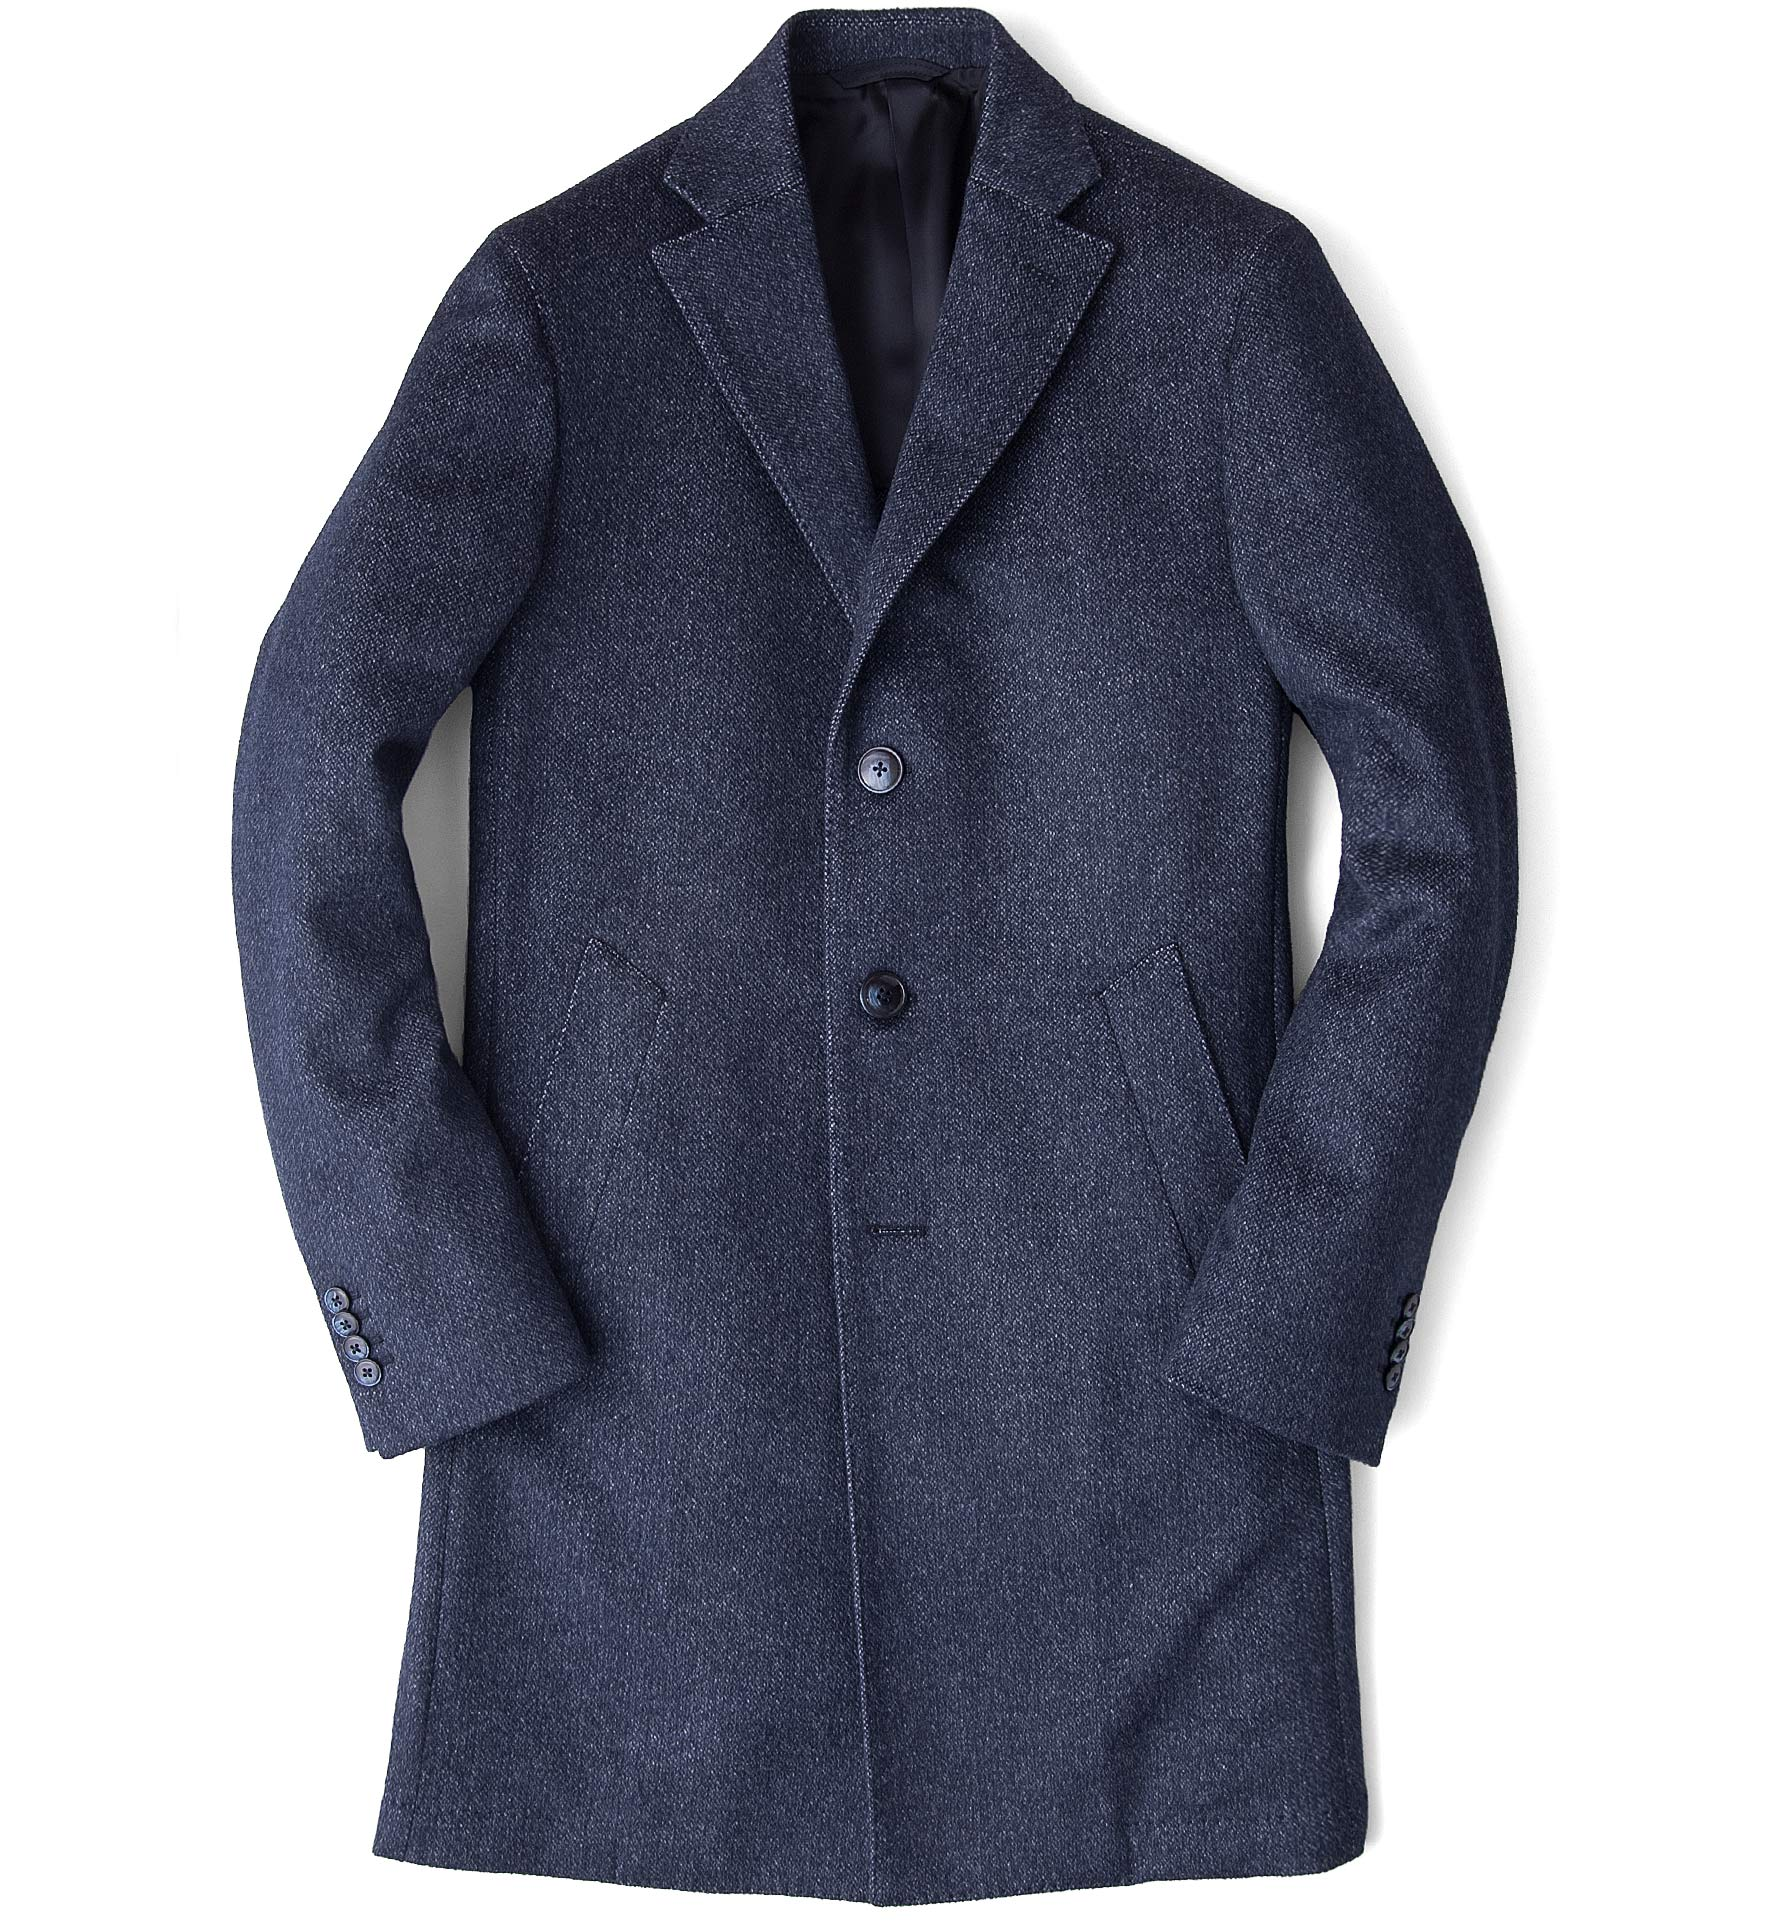 Zoom Image of Brera Slate Blue Wool Overcoat